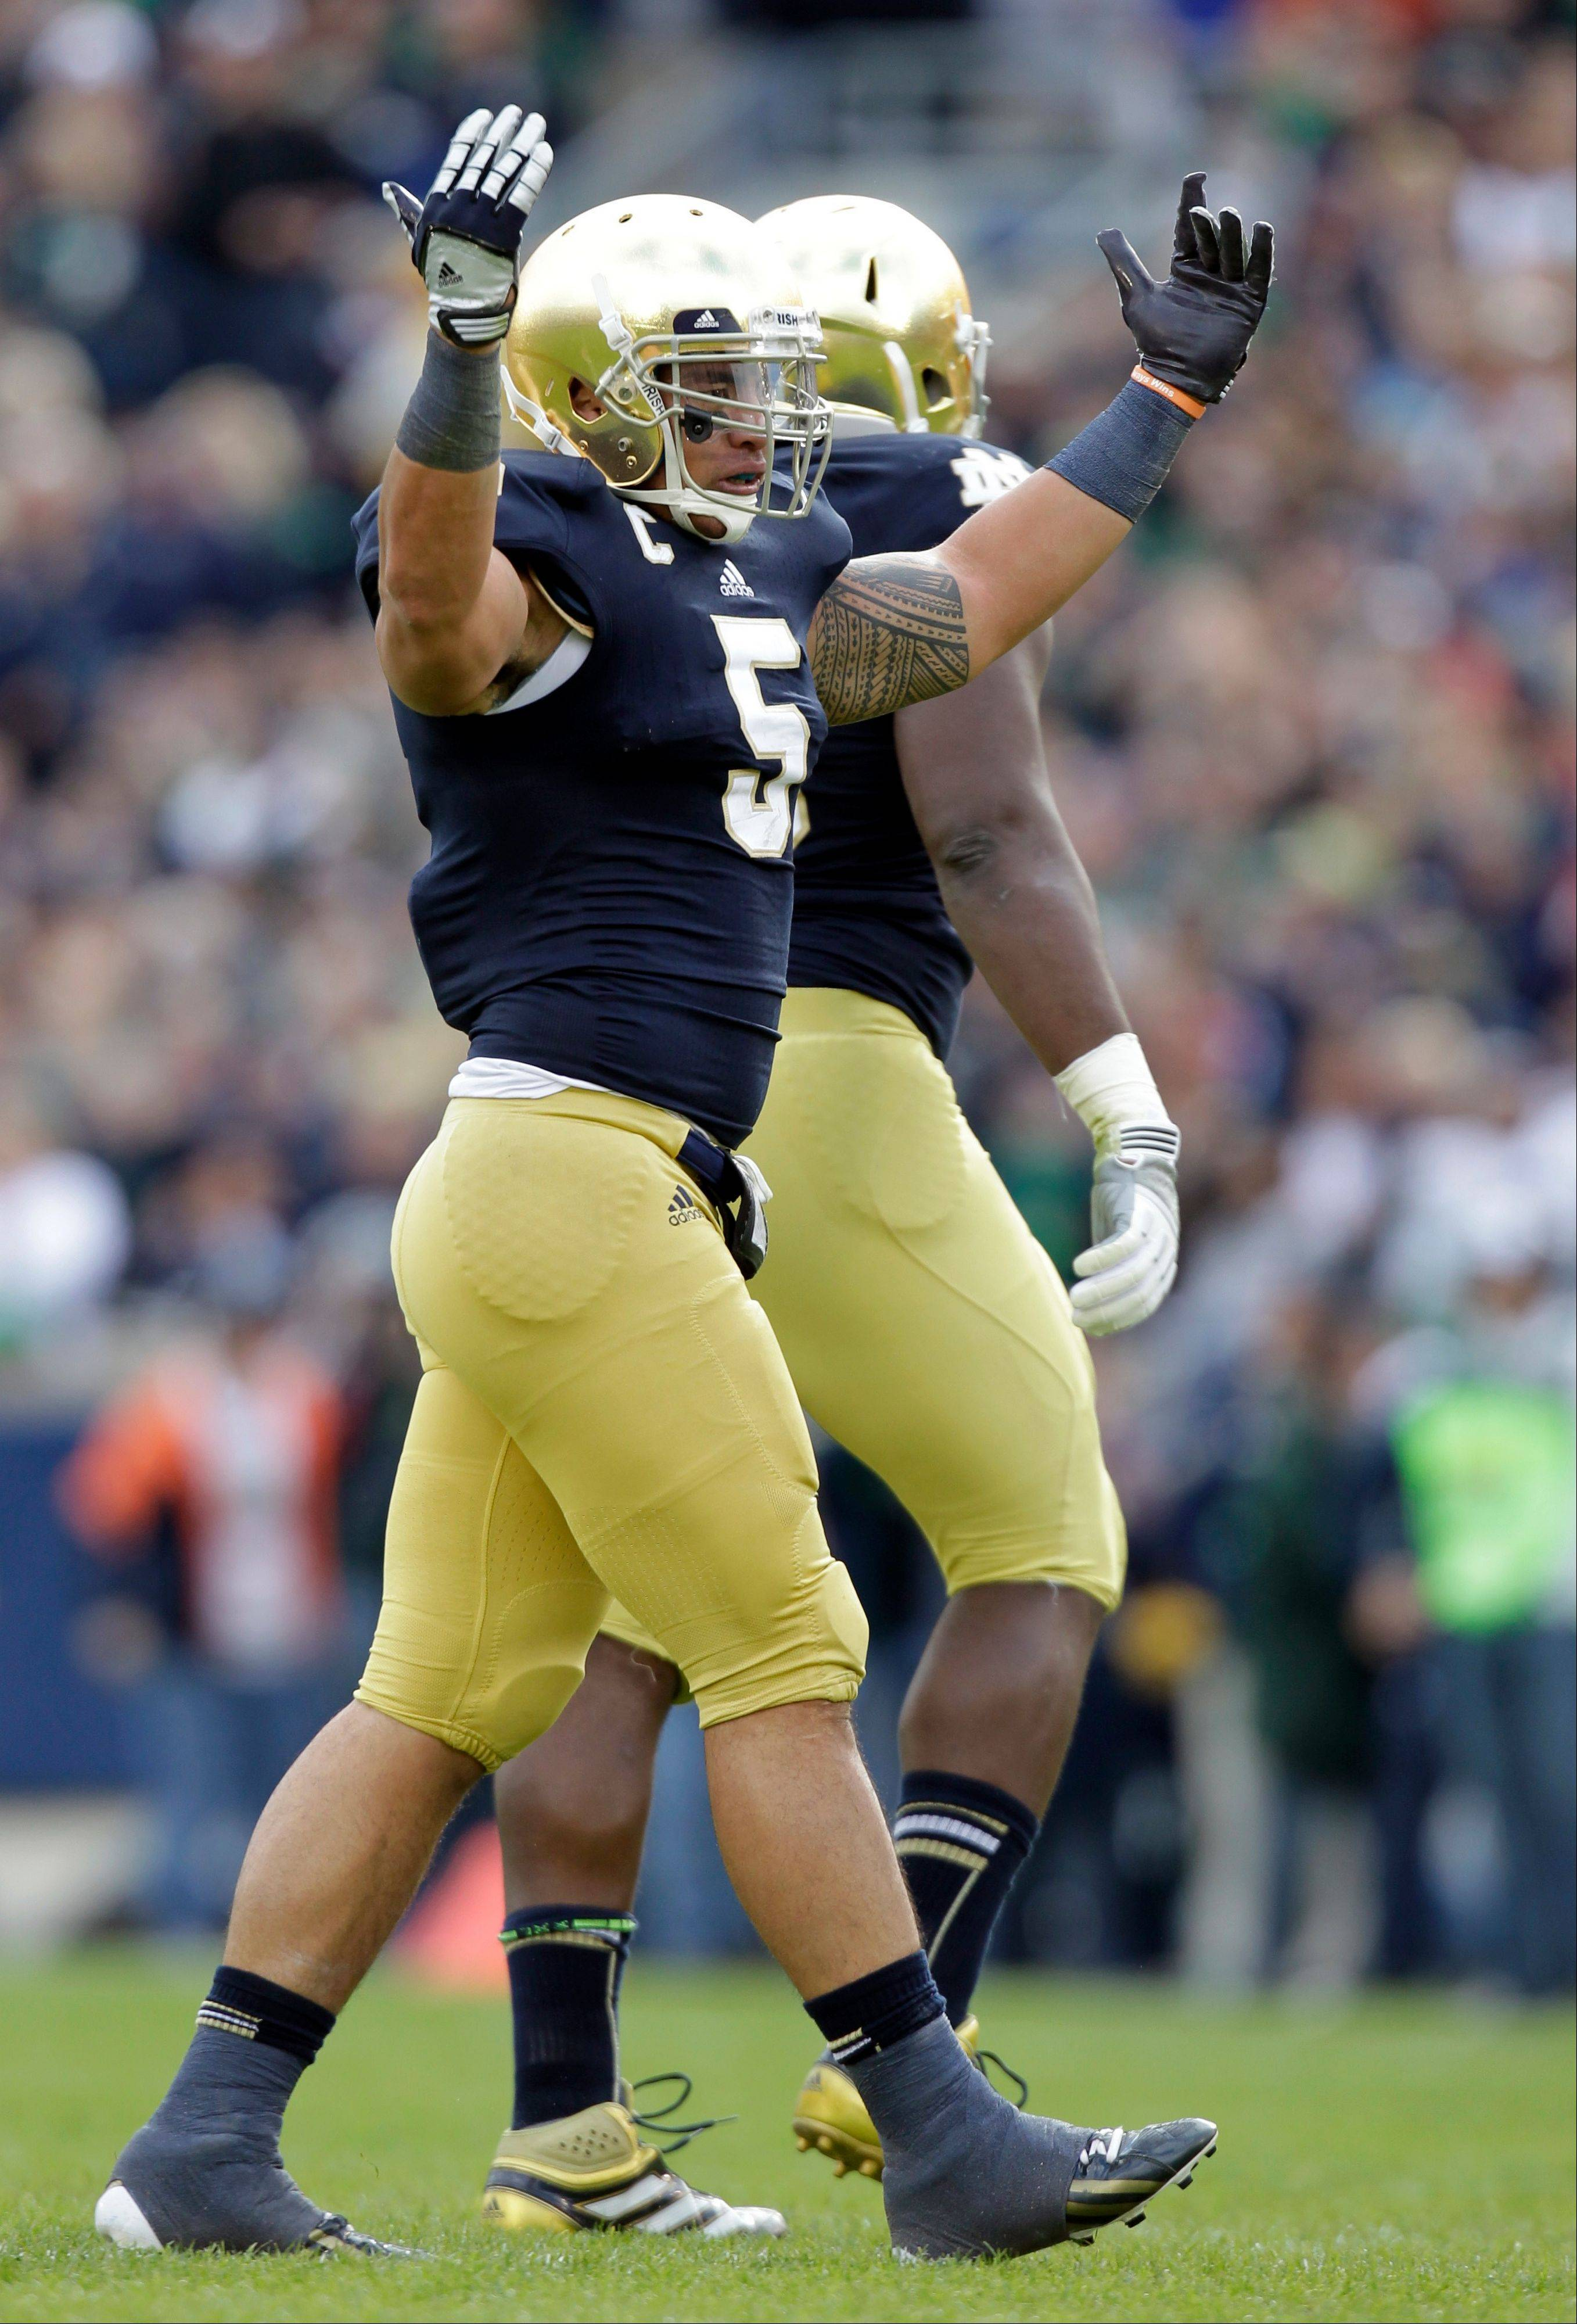 Notre Dame linebacker Manti Te�o celebrates after an interception against BYU last Saturday in South Bend, Ind. Notre Dame has built its undefeated start behind Te�o and the nation�s second-stingiest defense.